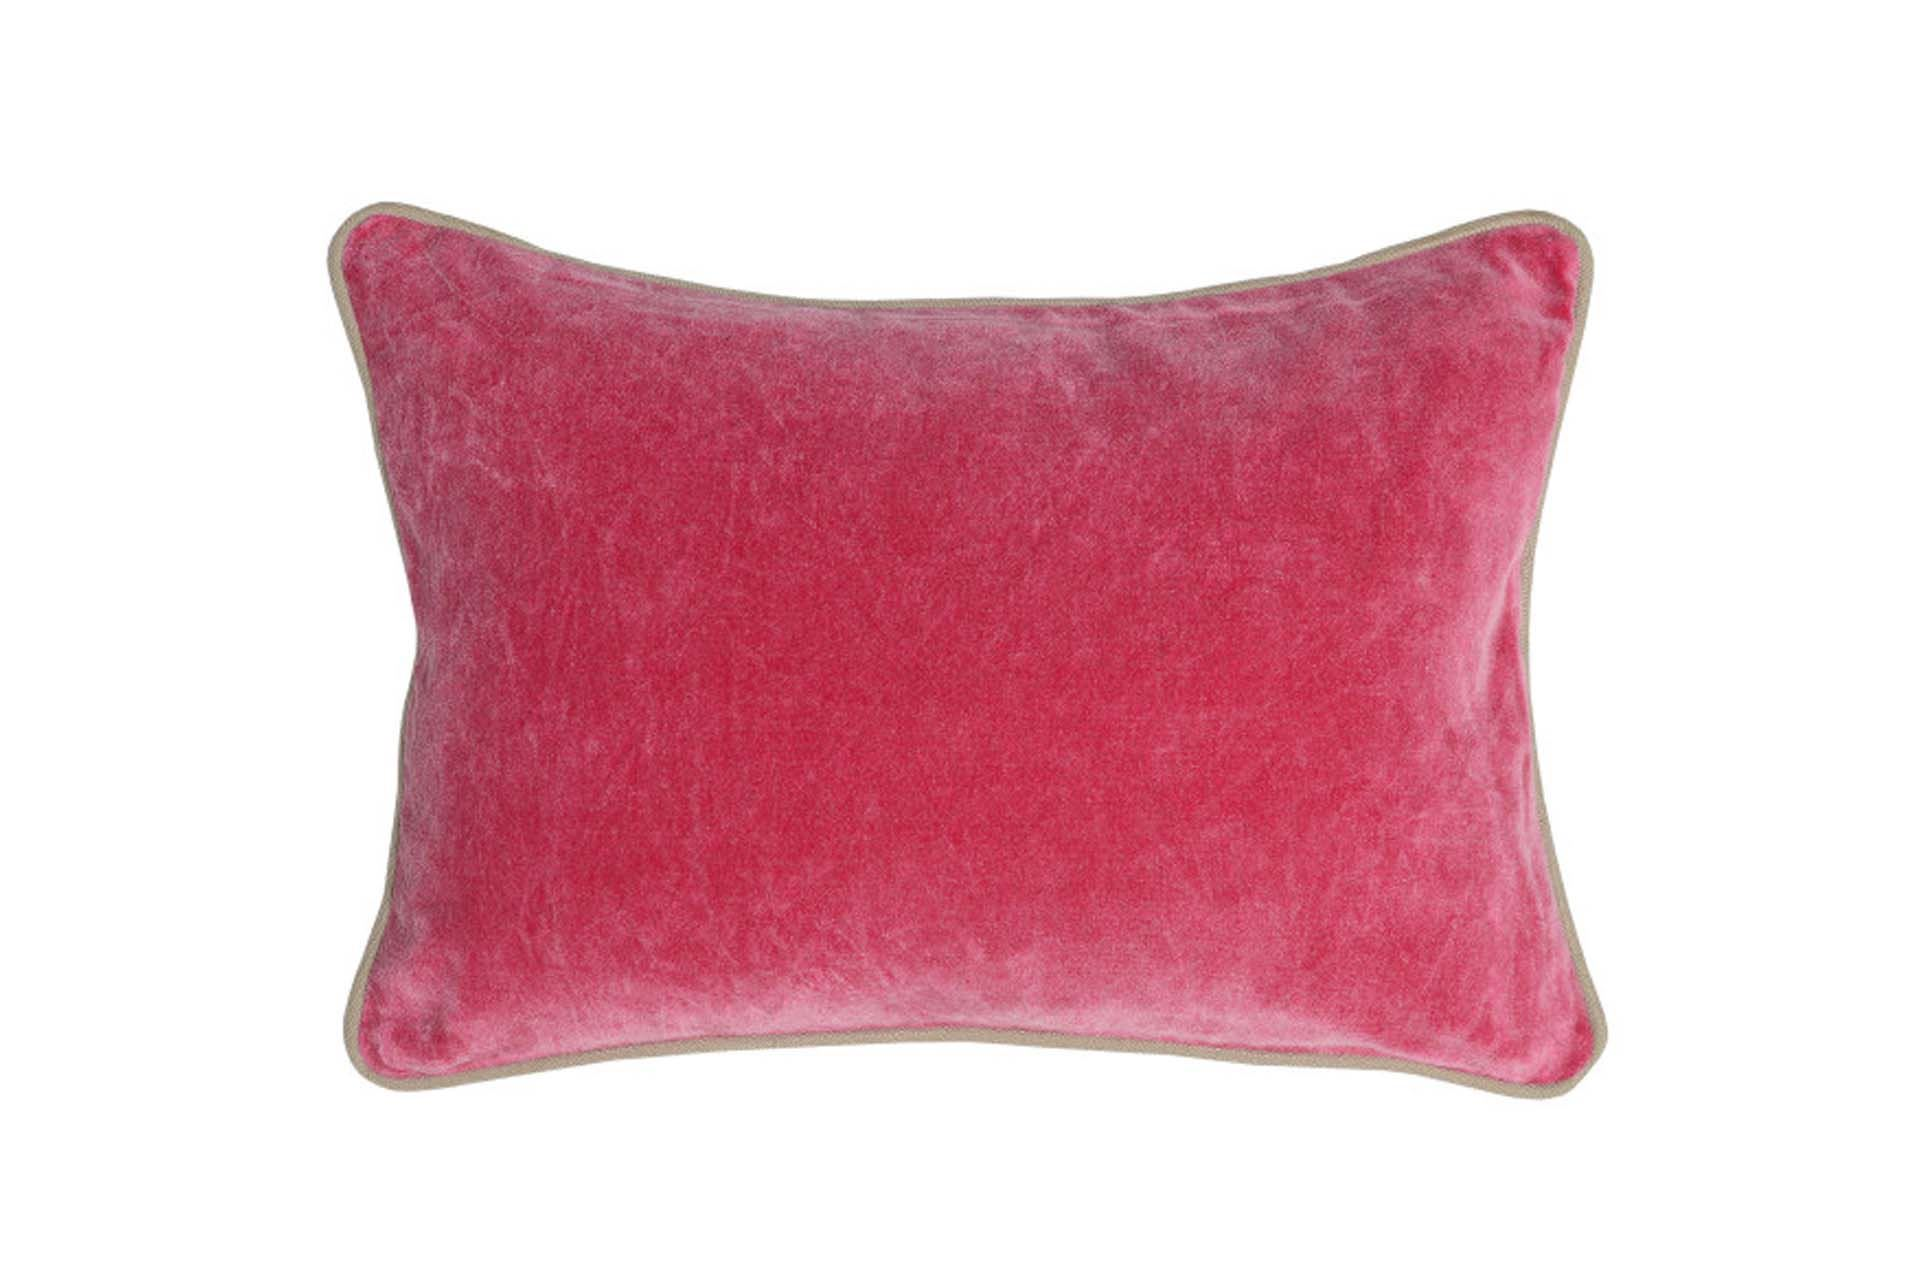 Fuschia Velvet Throw Pillows : Accent Pillow-Fuschia Washed Velvet 14X20 - Living Spaces